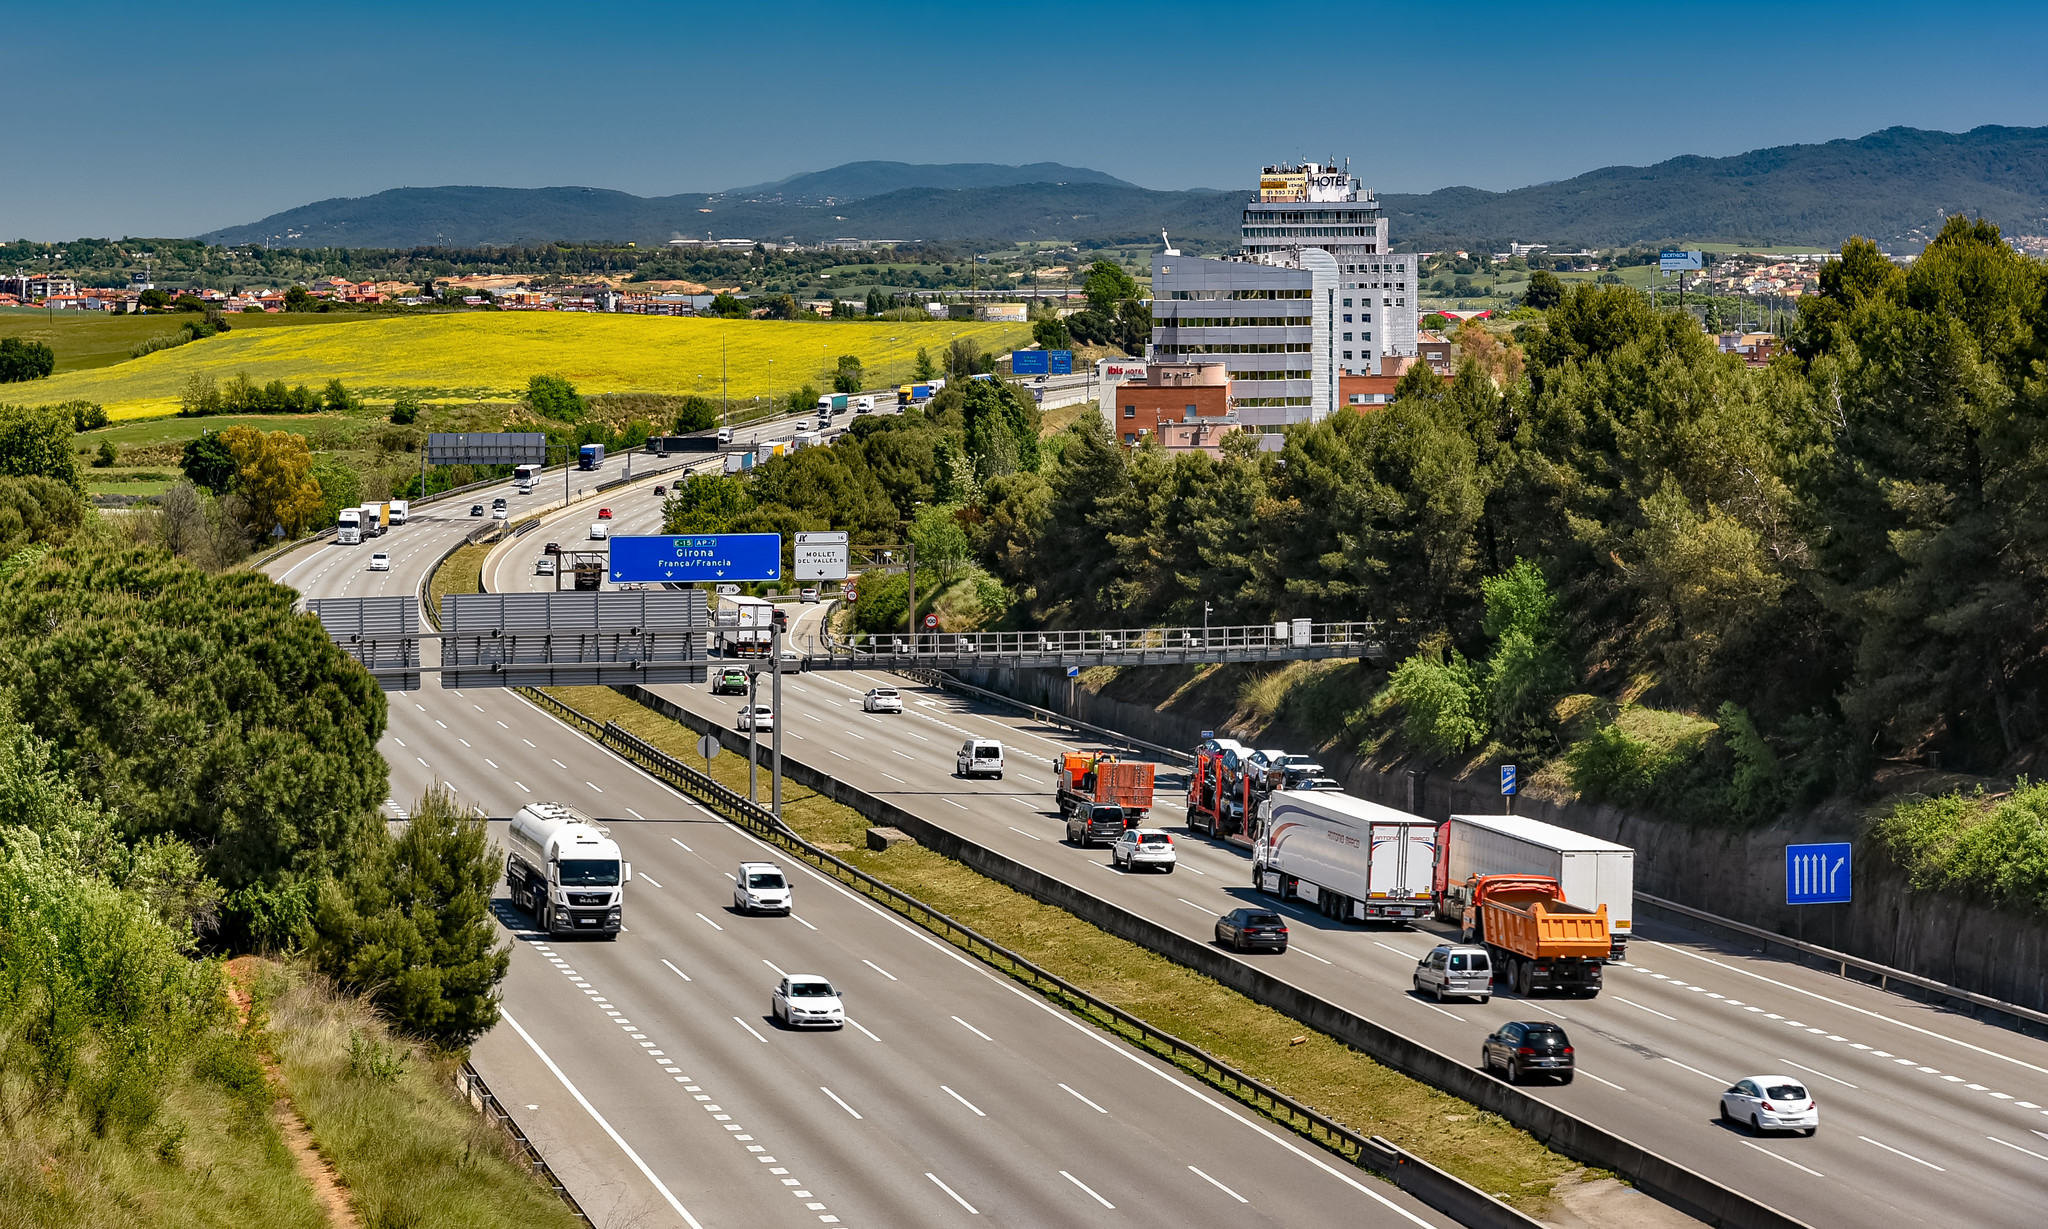 Scrapped motorway tolls in Spain could save hauliers €1,900 per truck, per year